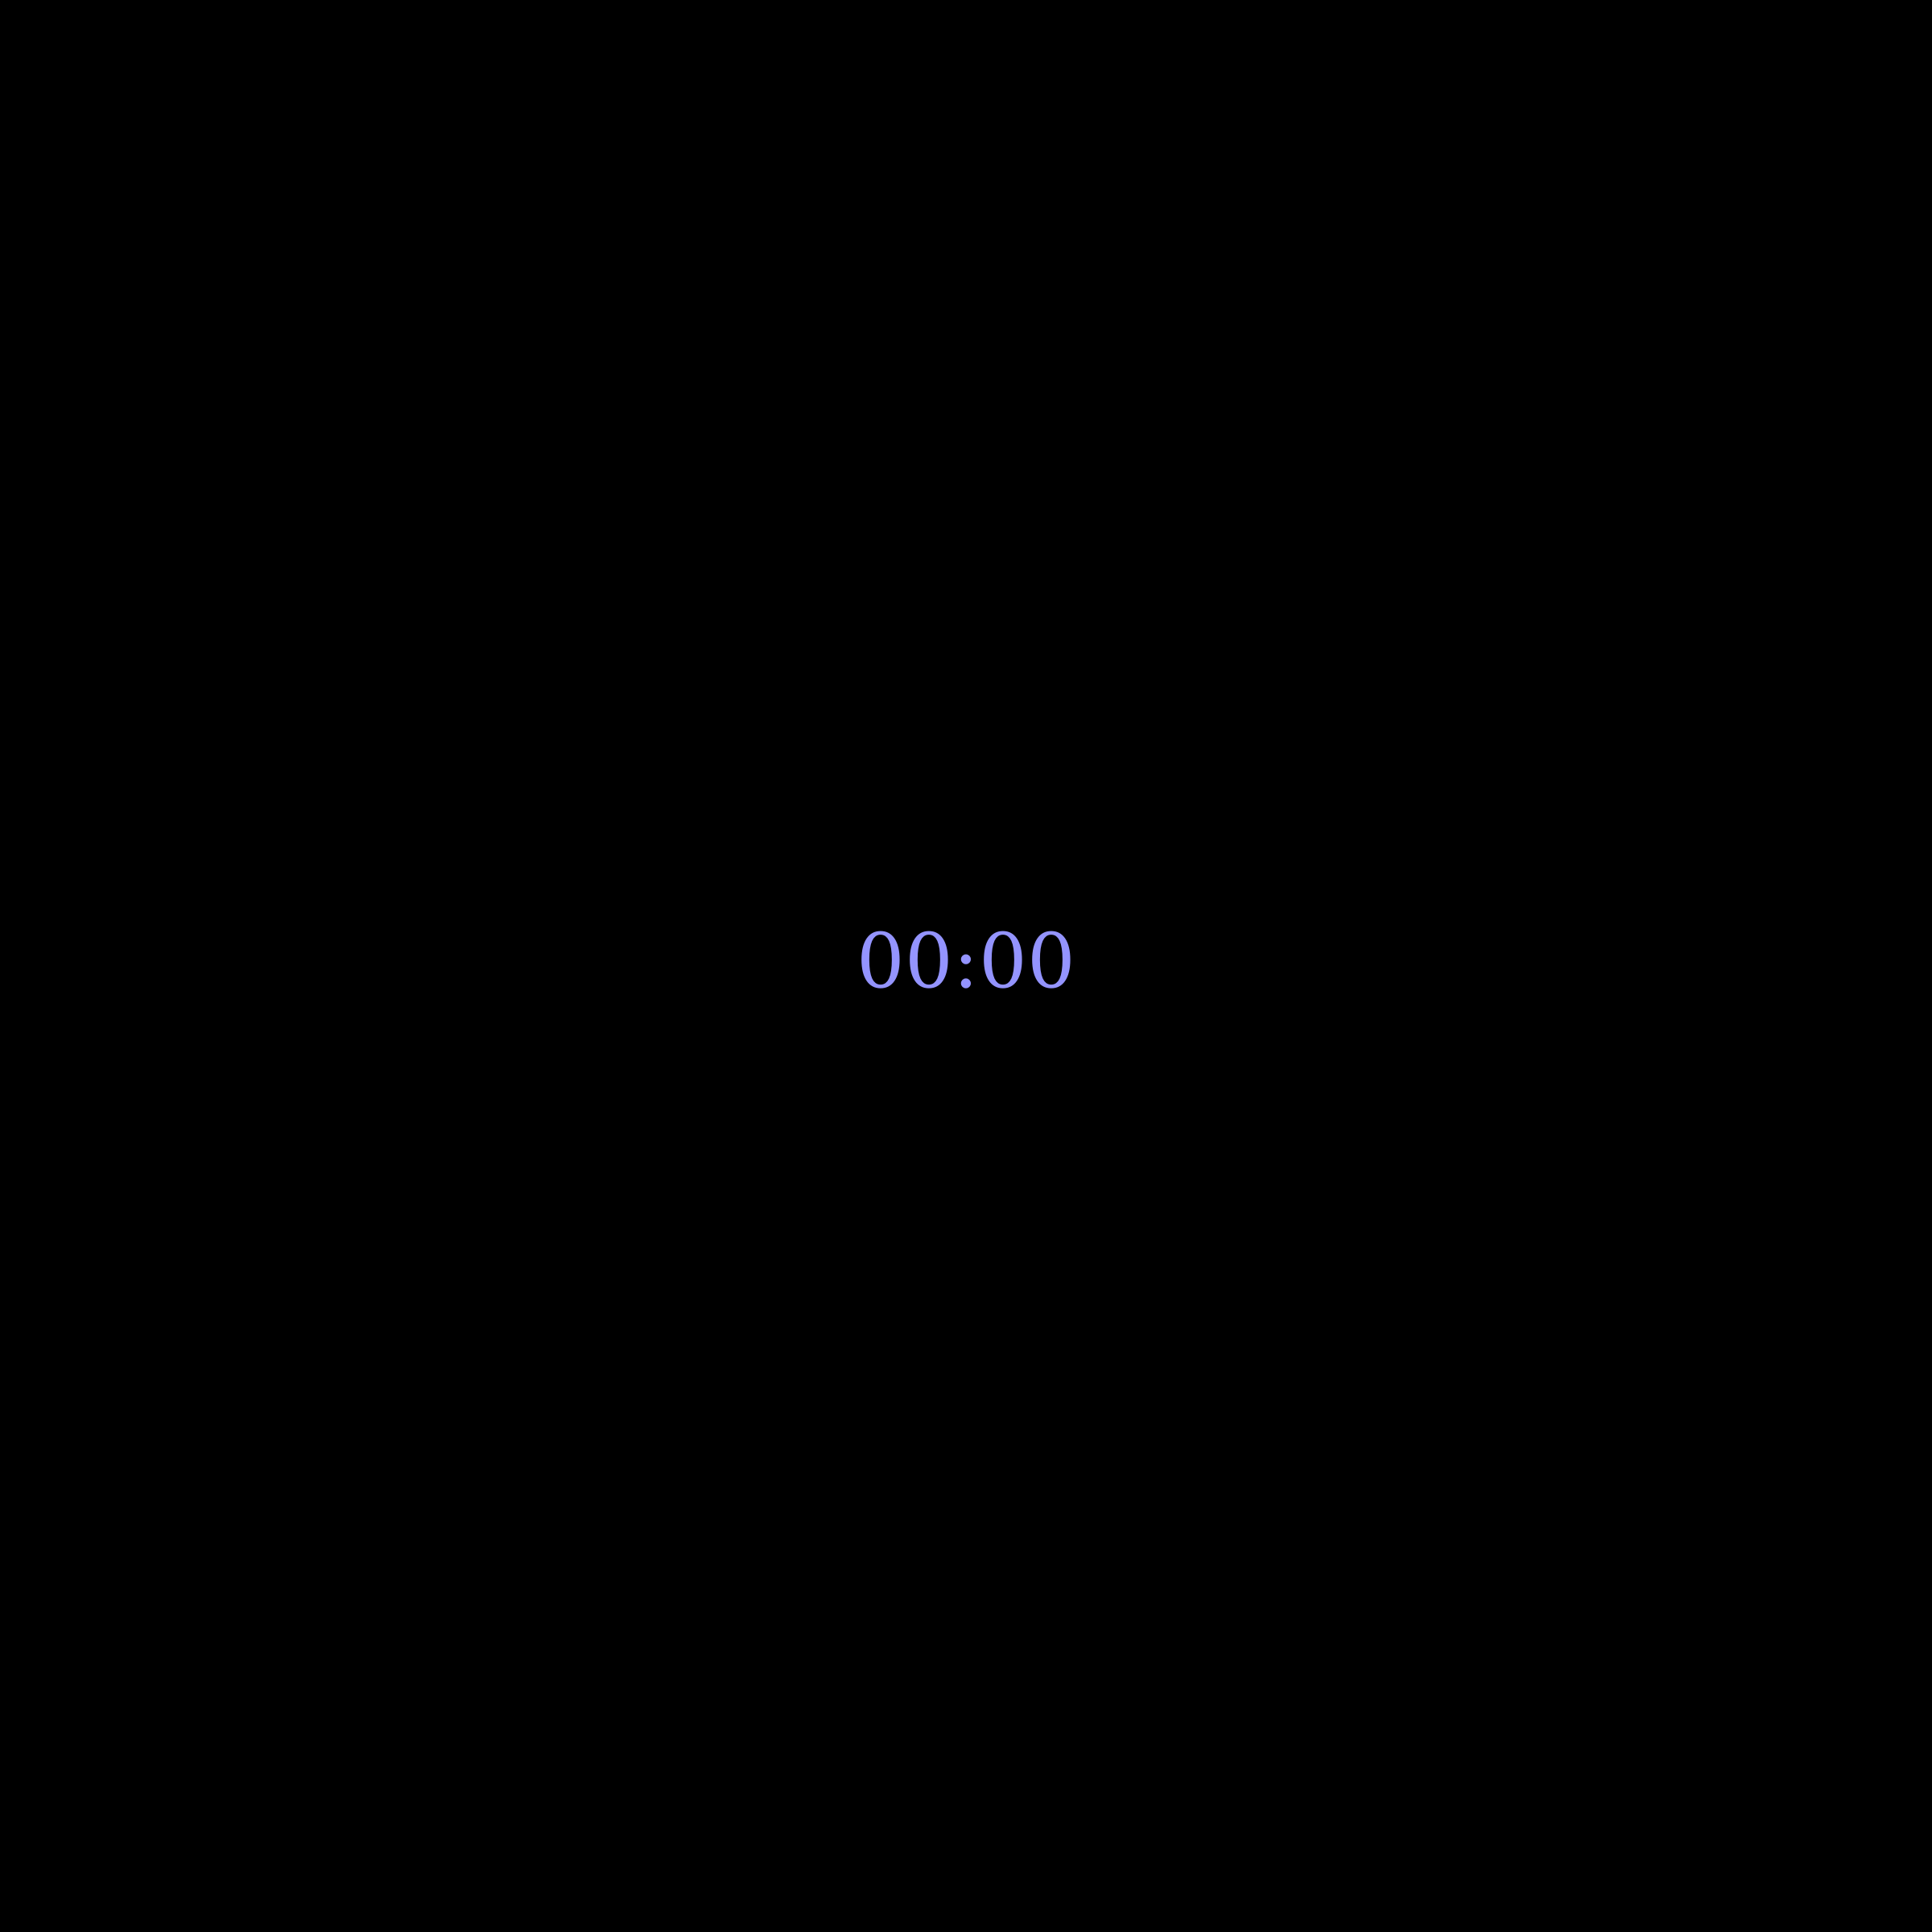 Upvote Clock with Black Background by gringer